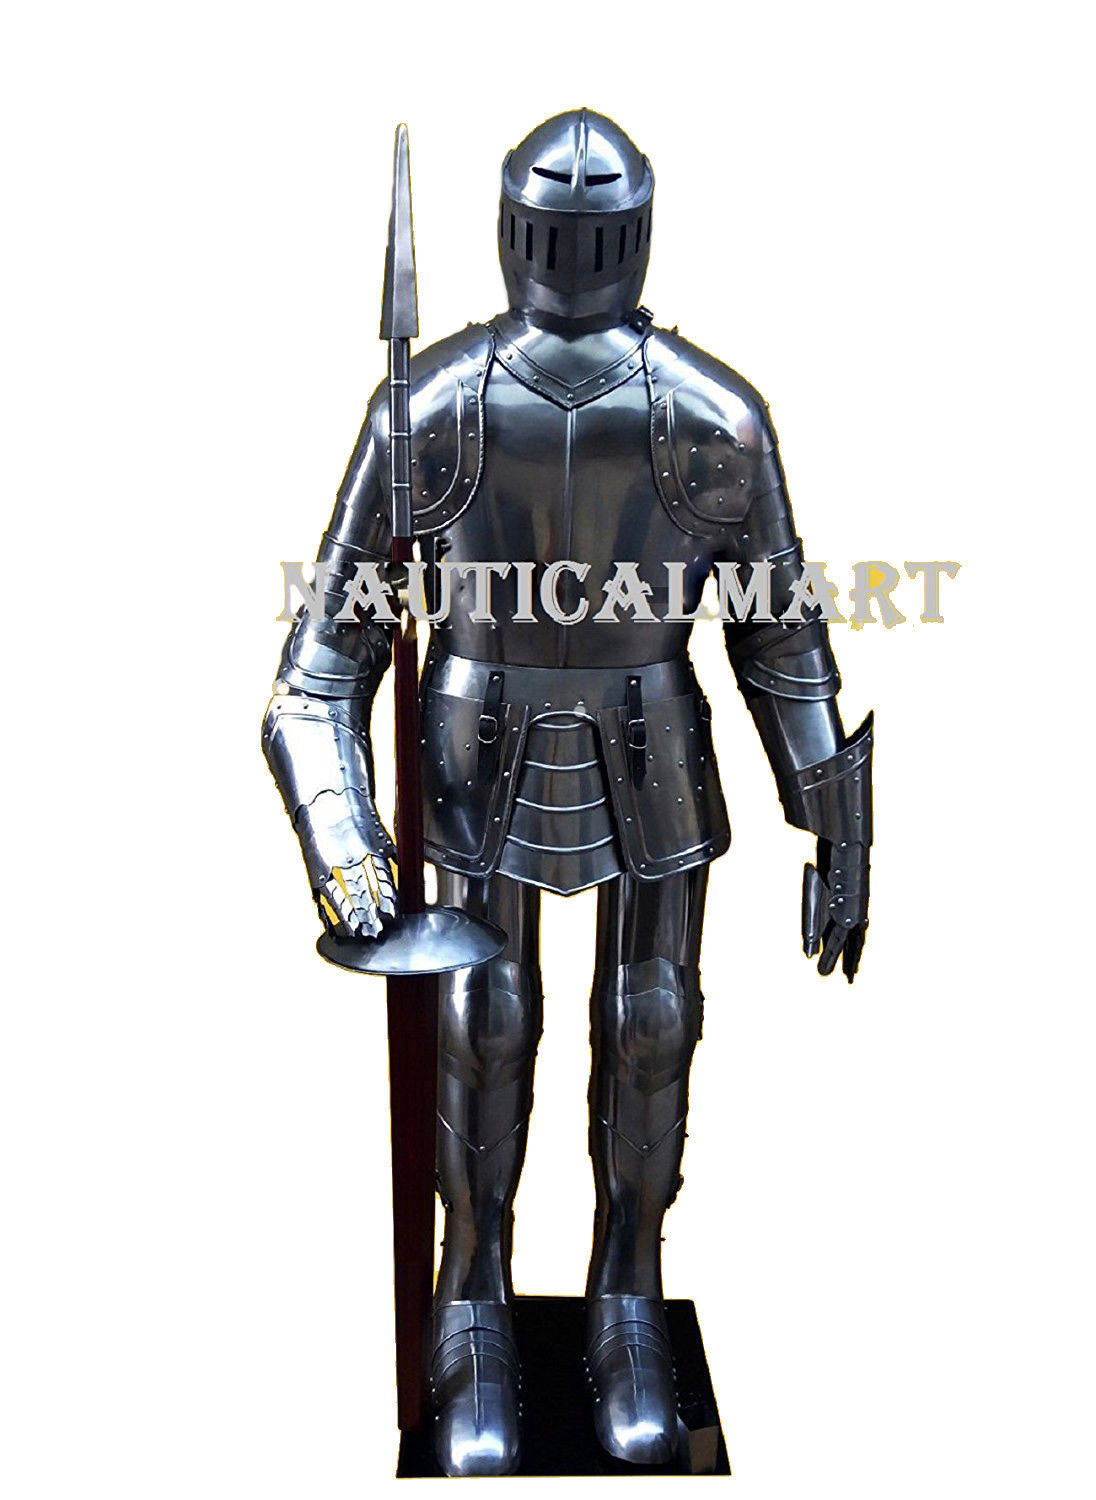 Primary image for Medieval knight suit of Armor 17th century combat full body Armor suit